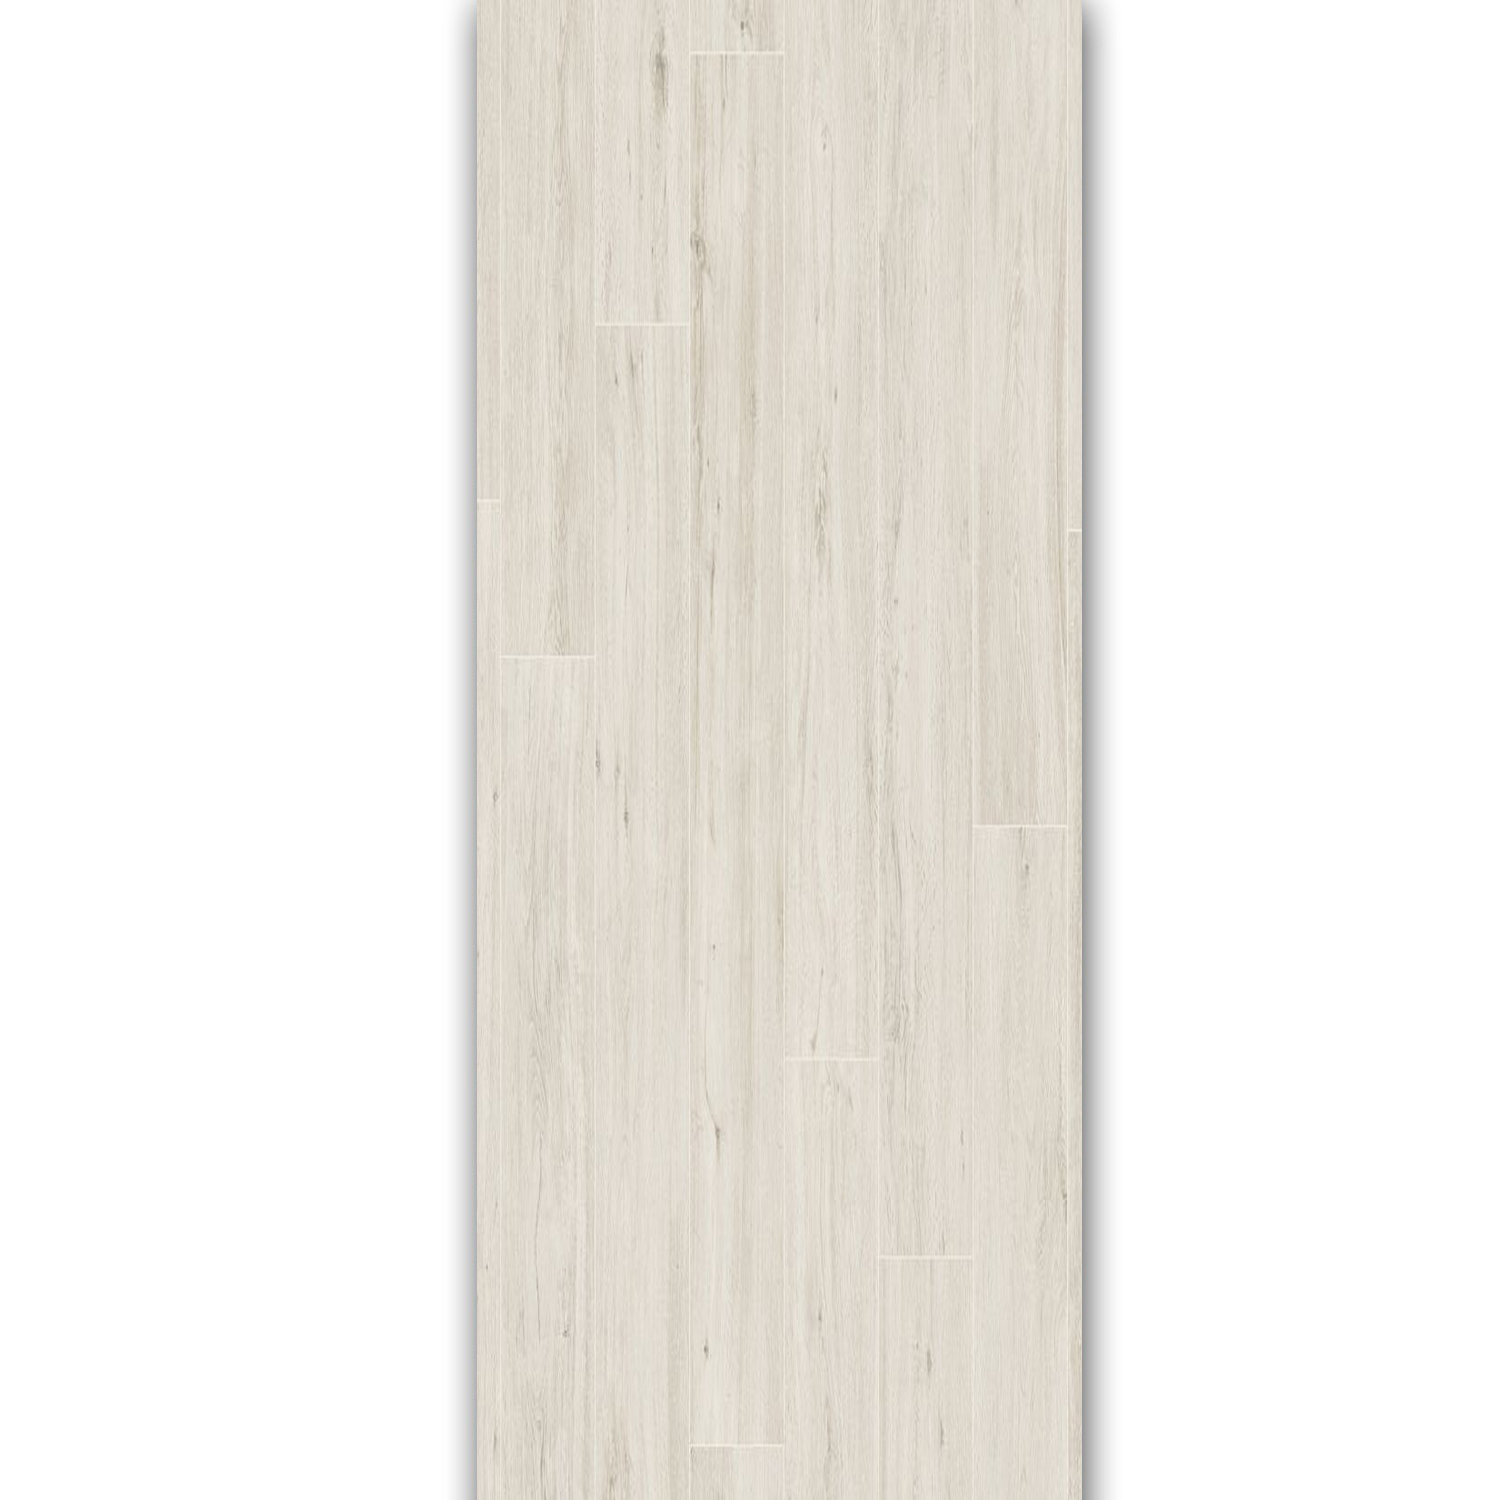 MARAZZI JUST LIFE COLOR WHITE 16x100 CM_1